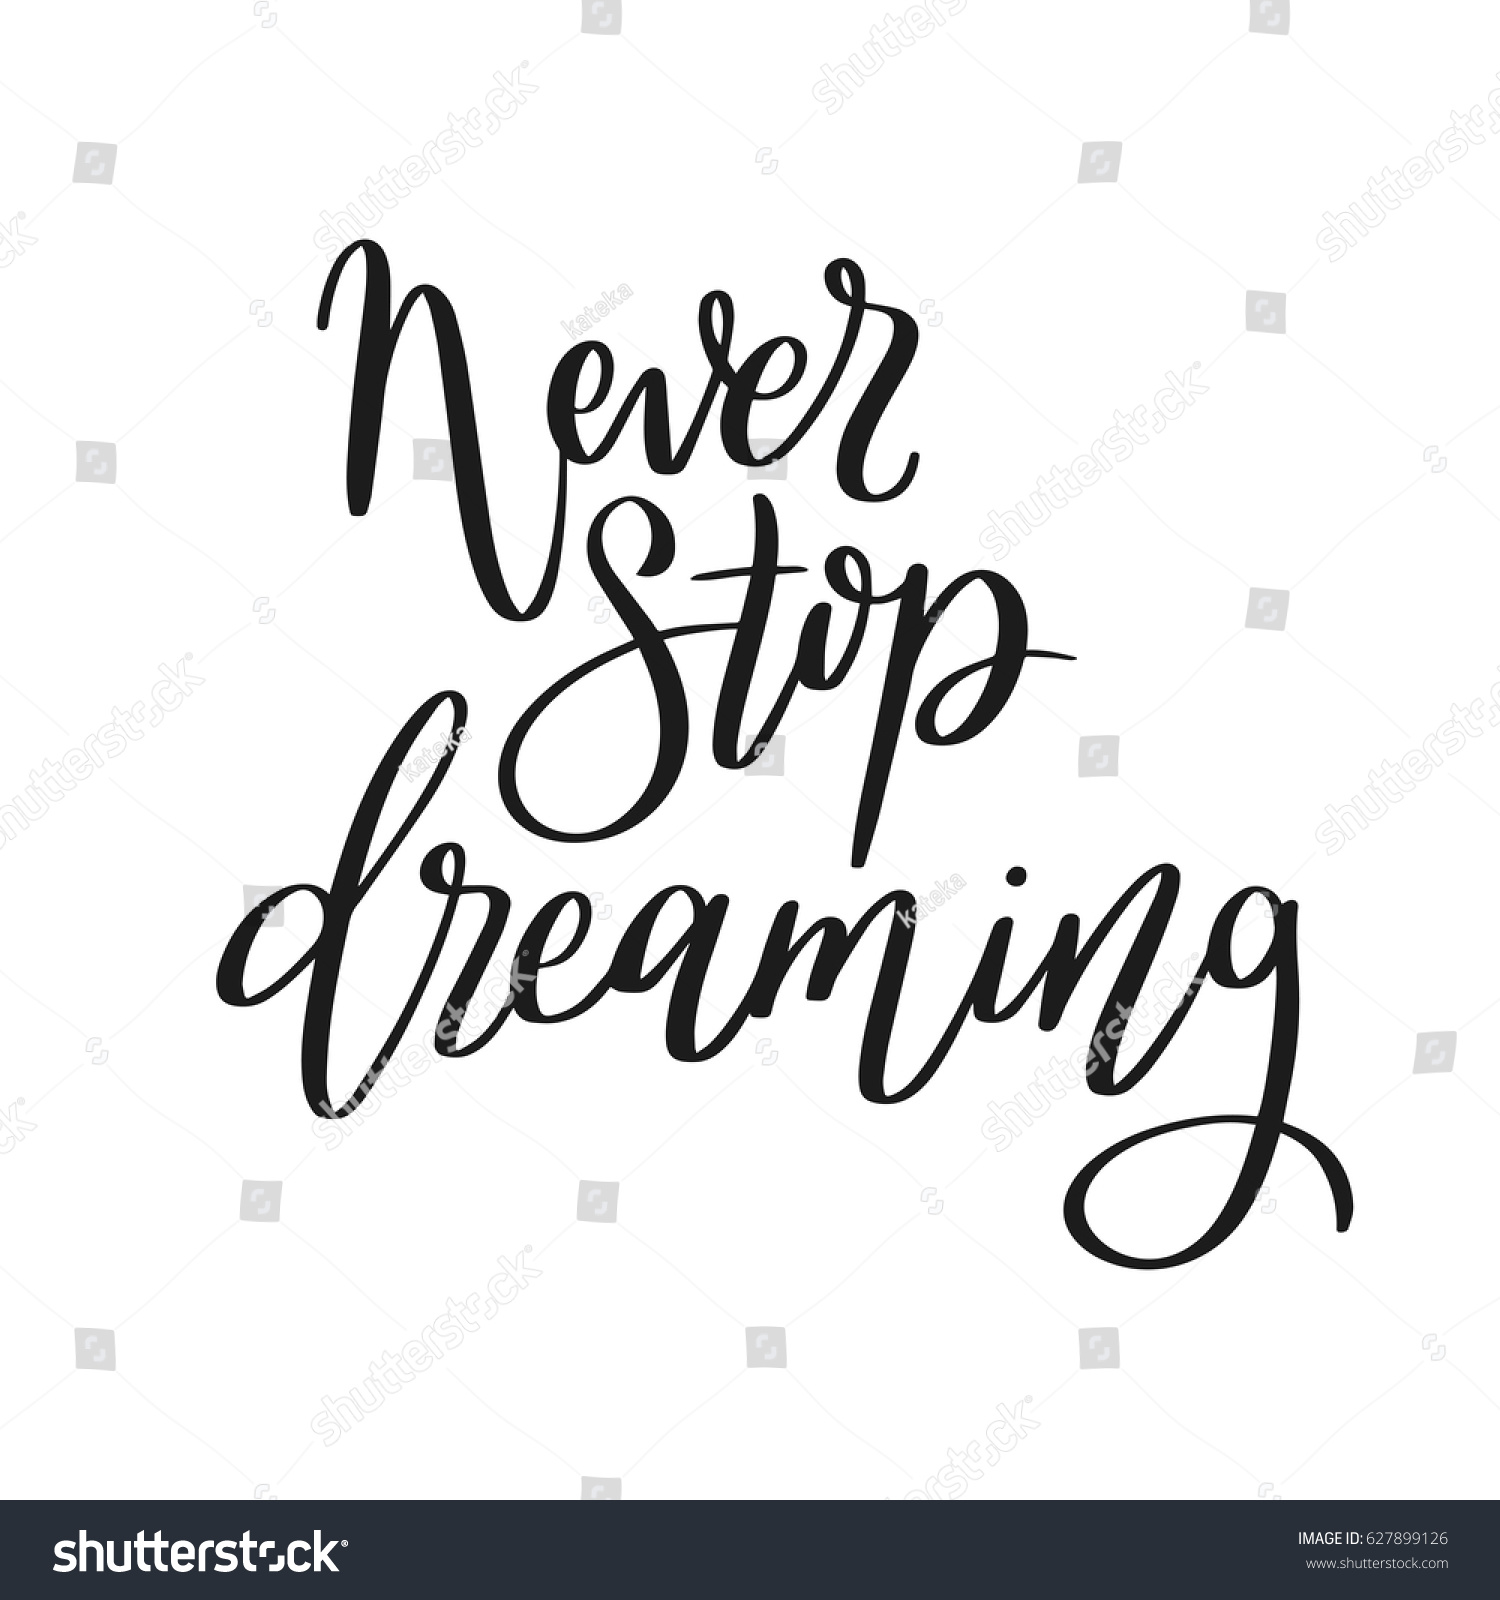 Never stop dreaming calligraphic motivational quote stock